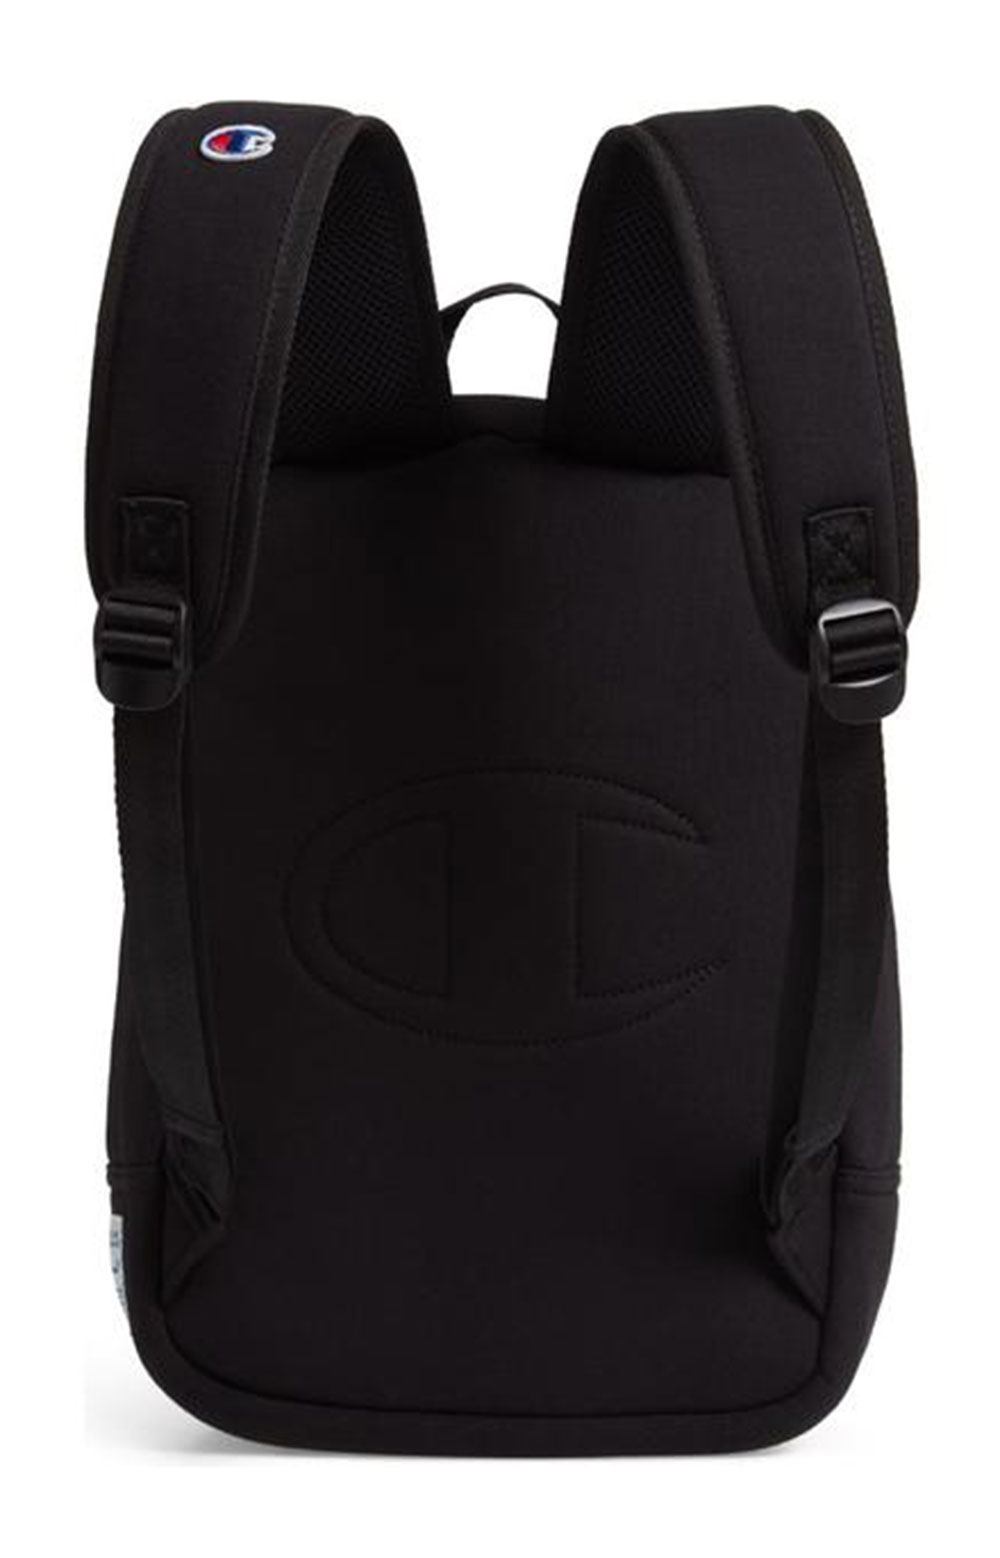 (Ch1095) Champion Reverse Weave Pullover Backpack - Black  2